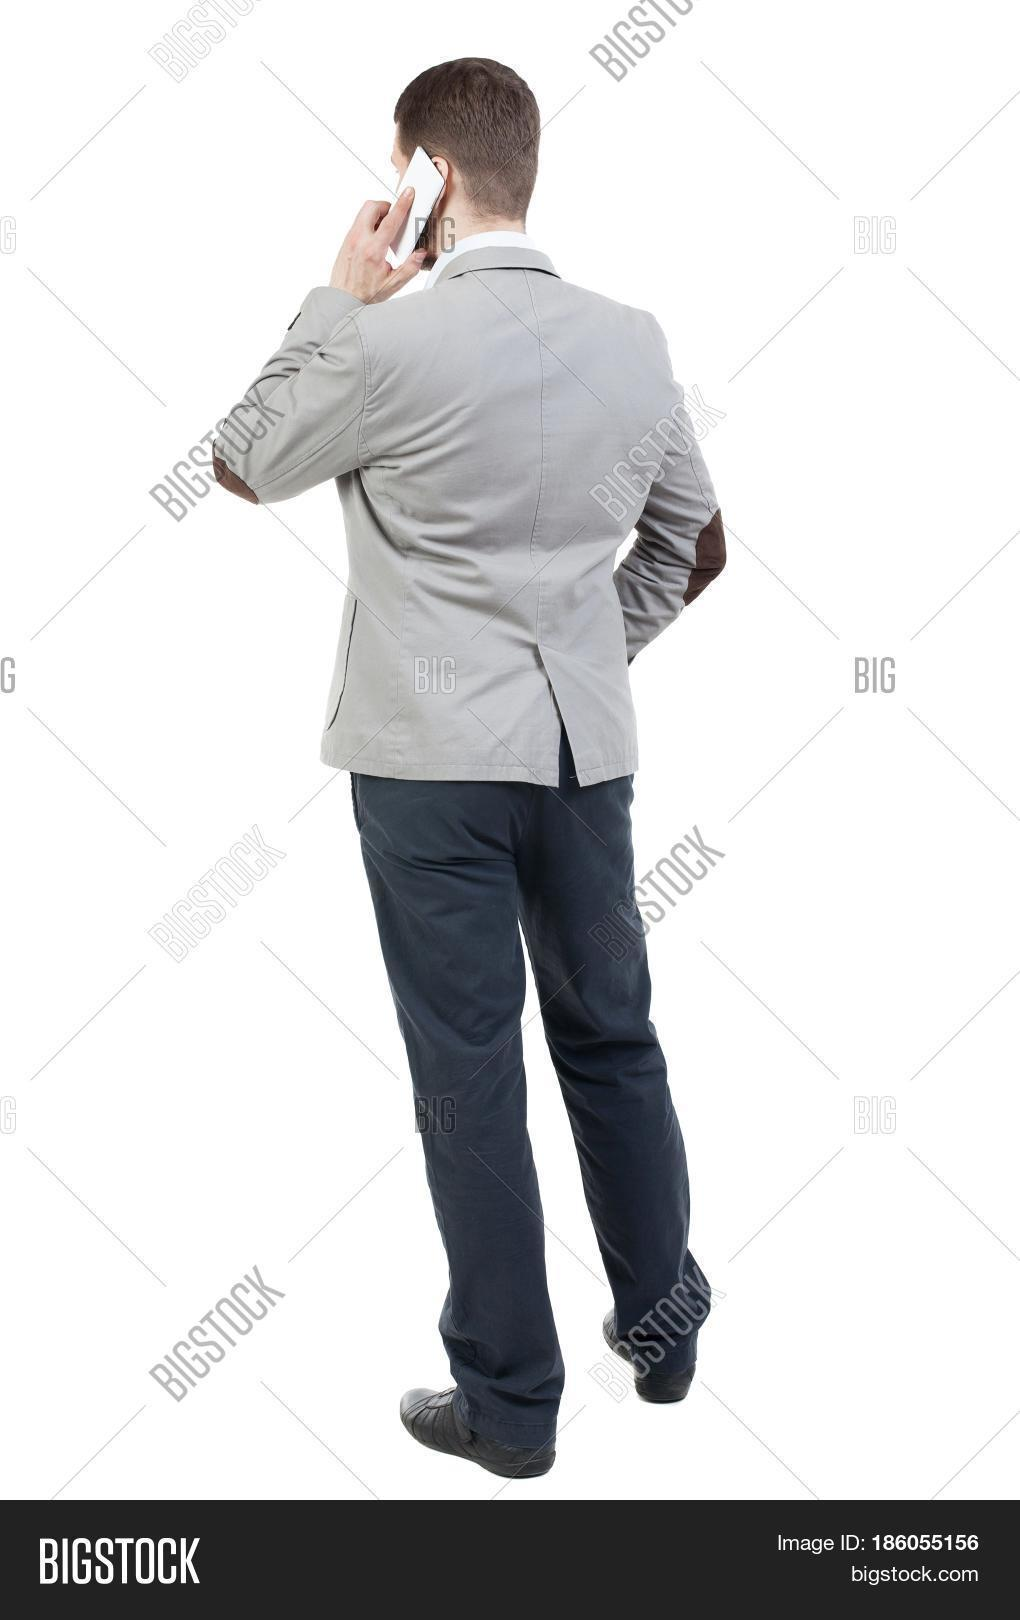 Back View Business Man Suit Talking Image & Photo | Bigstock